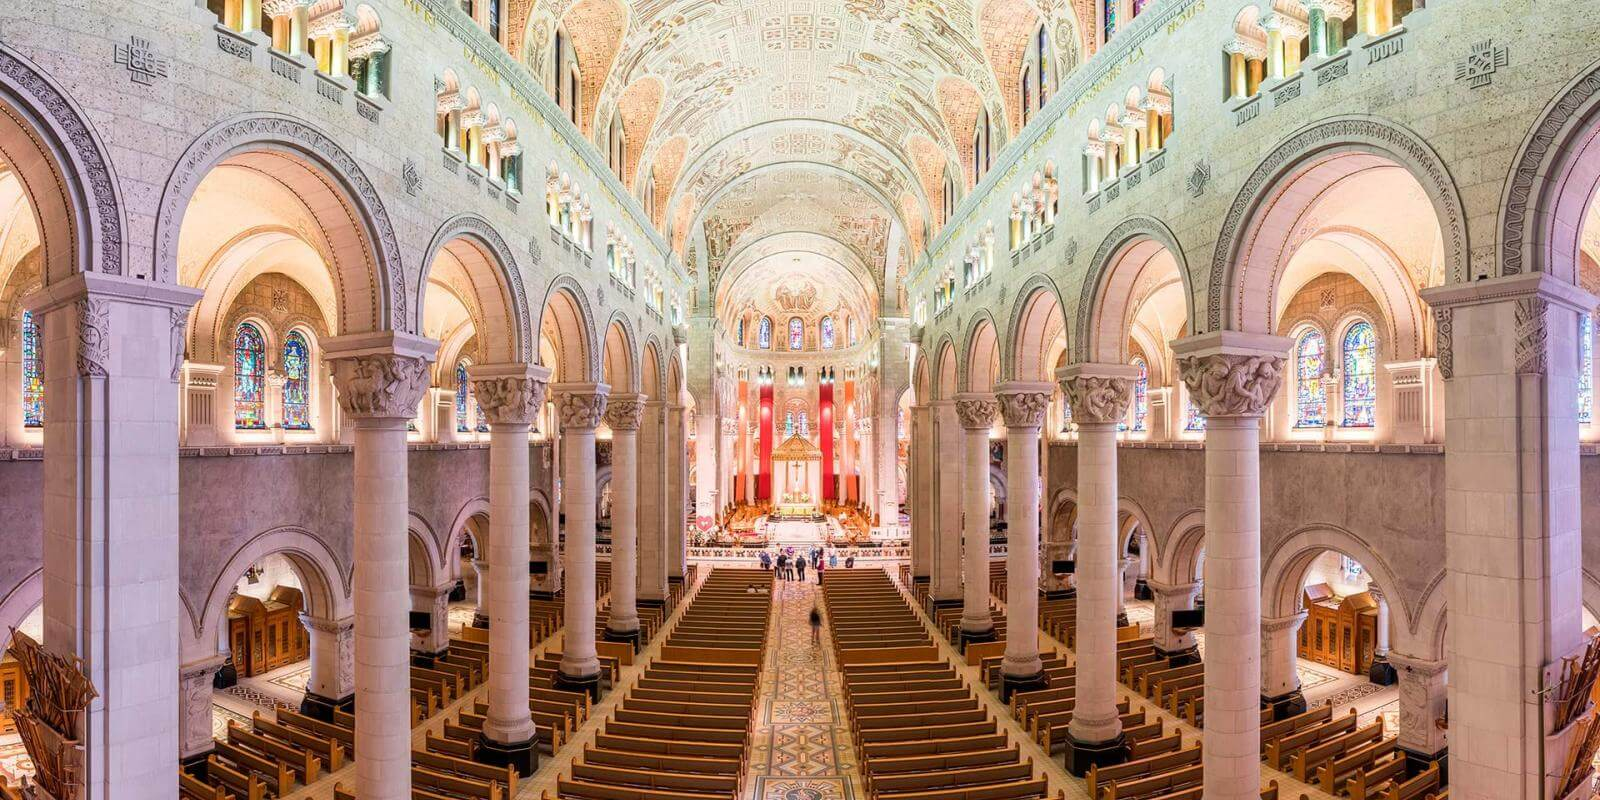 Impressive view of the interior of the Sanctuary of Sainte-Anne-de-Beaupré with its columns and detailed ceiling.